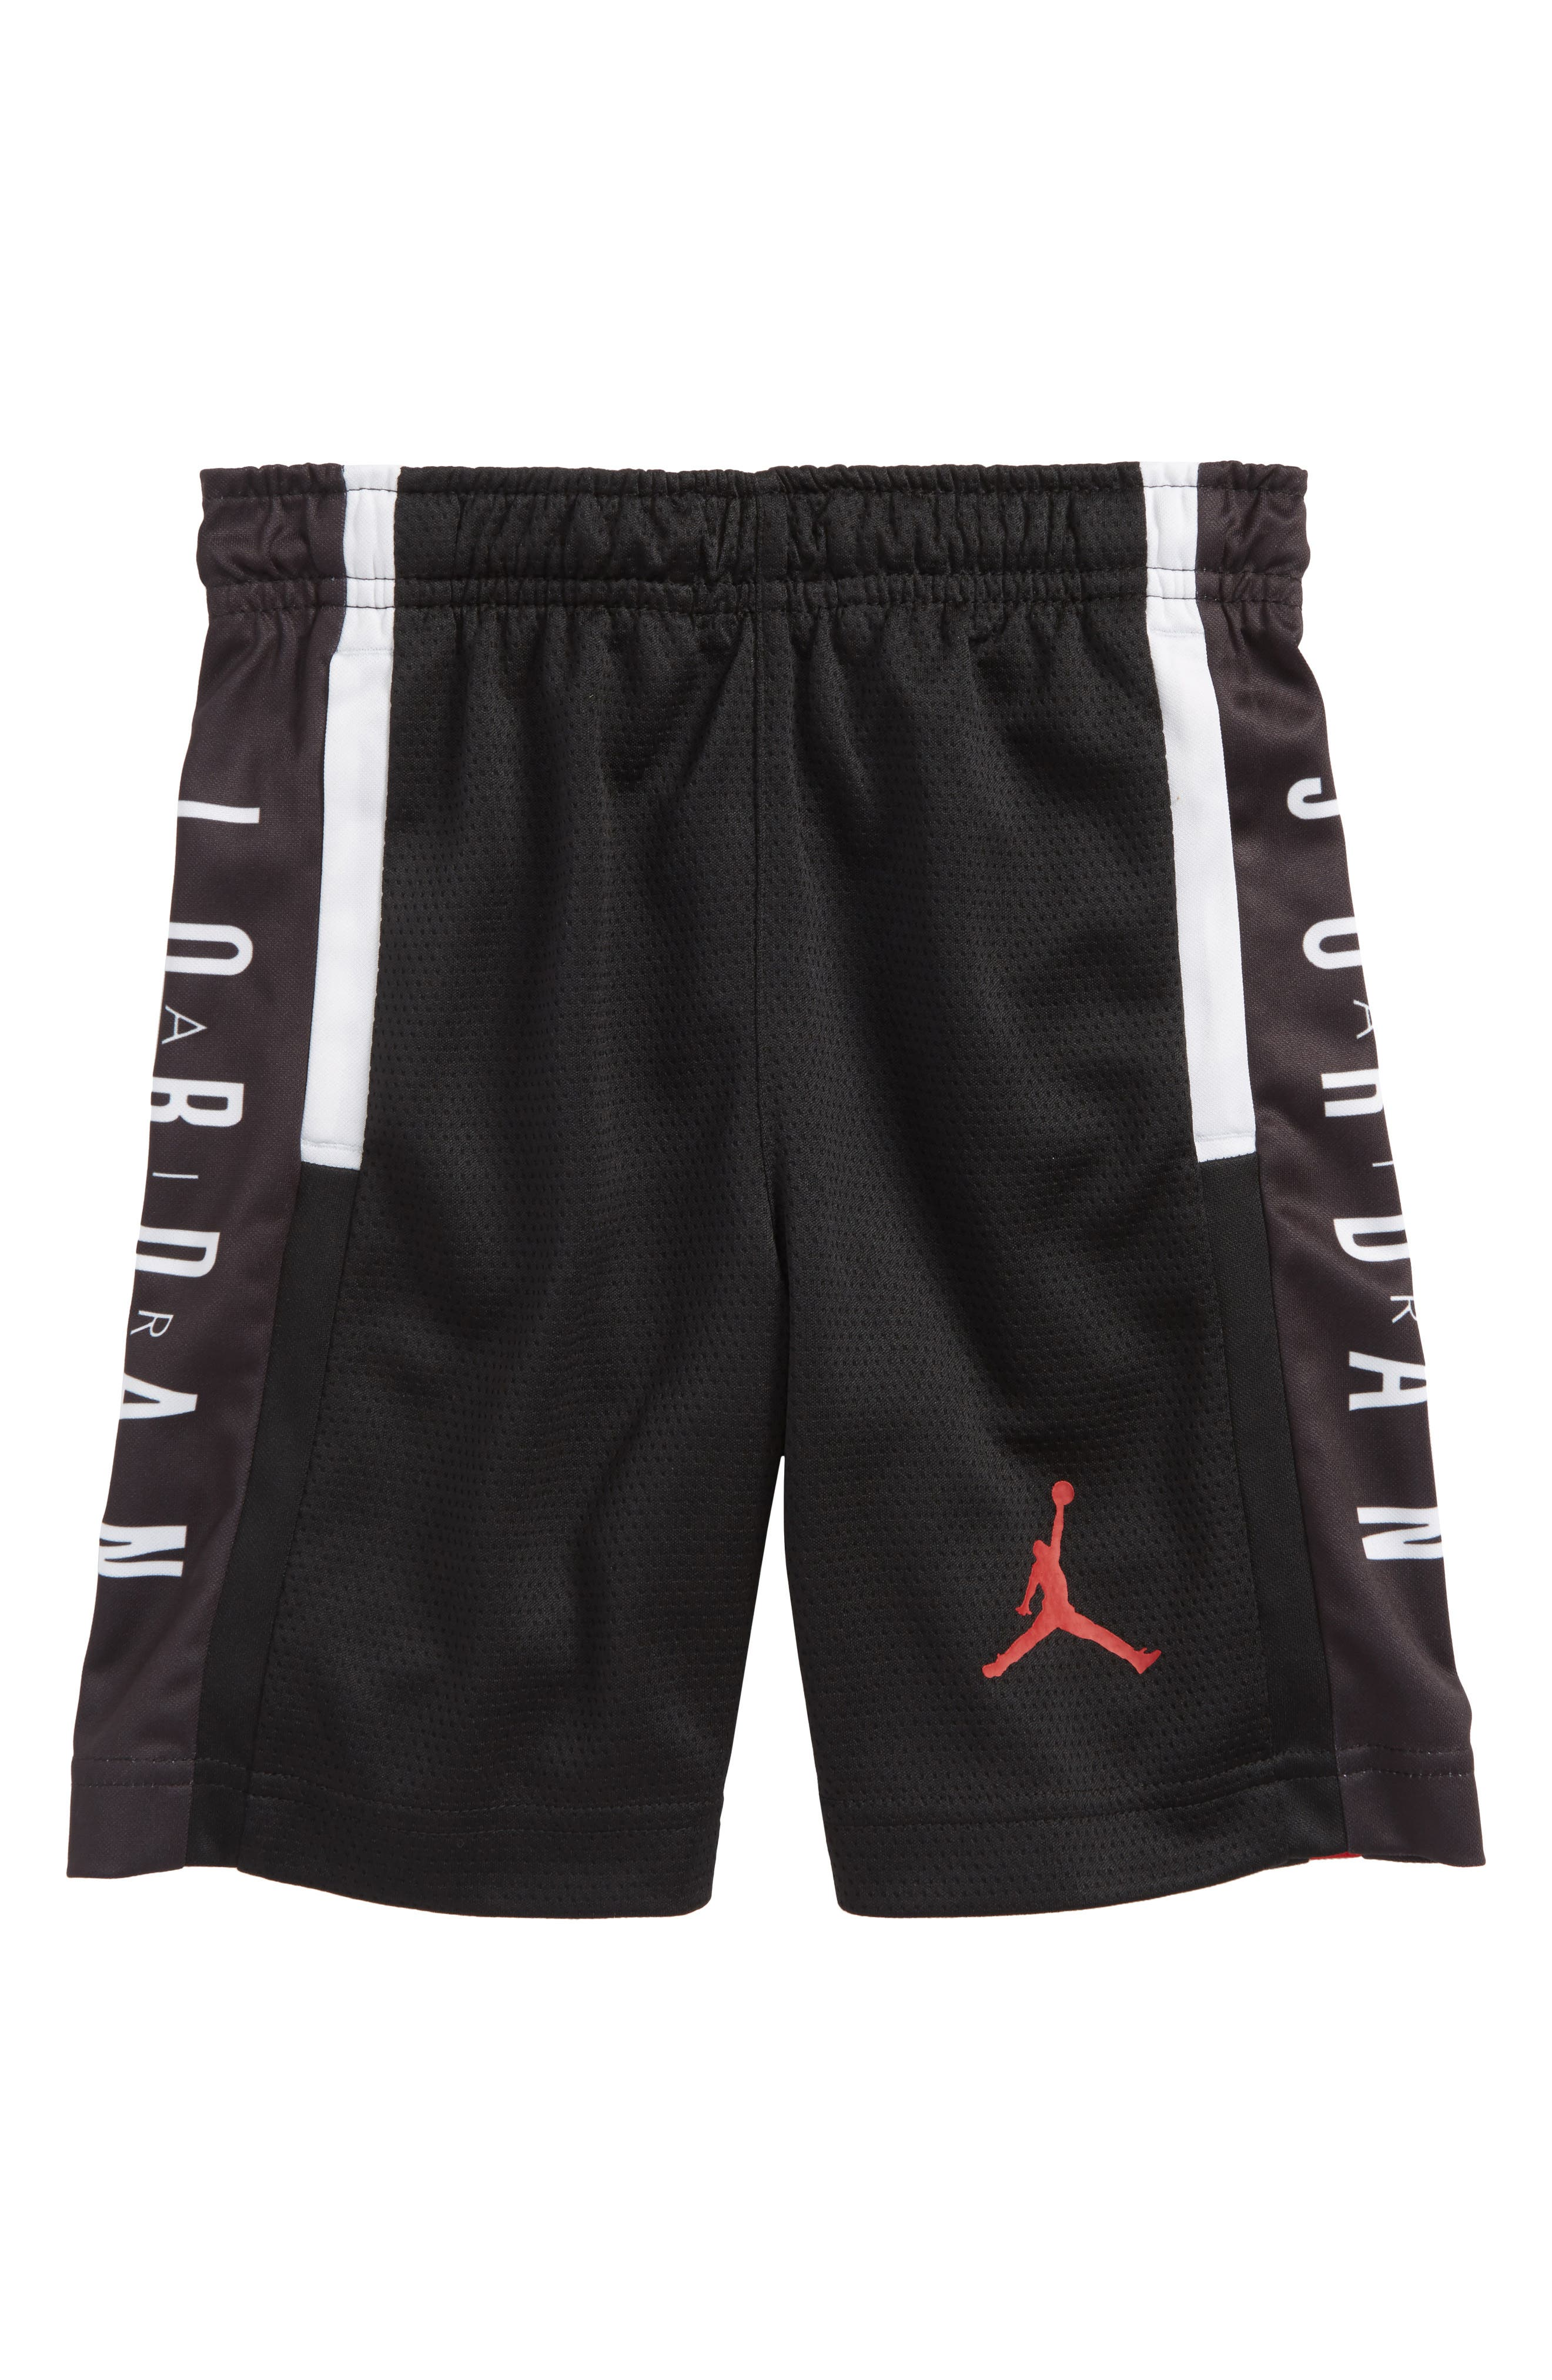 Jordan Rise Dri-FIT Graphic Shorts,                             Main thumbnail 1, color,                             004